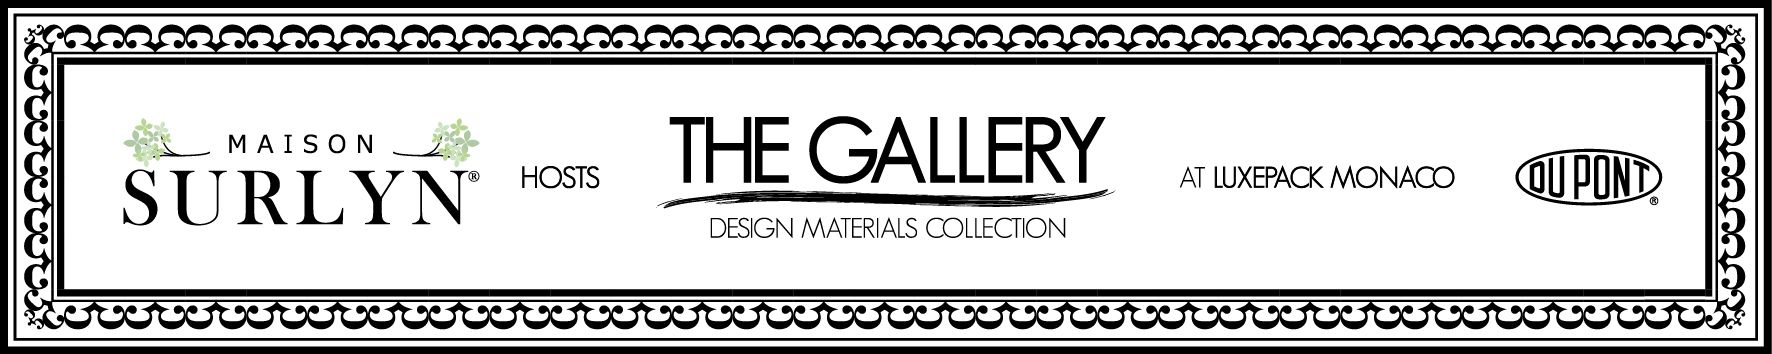 The Gallery - Design Materials Collection